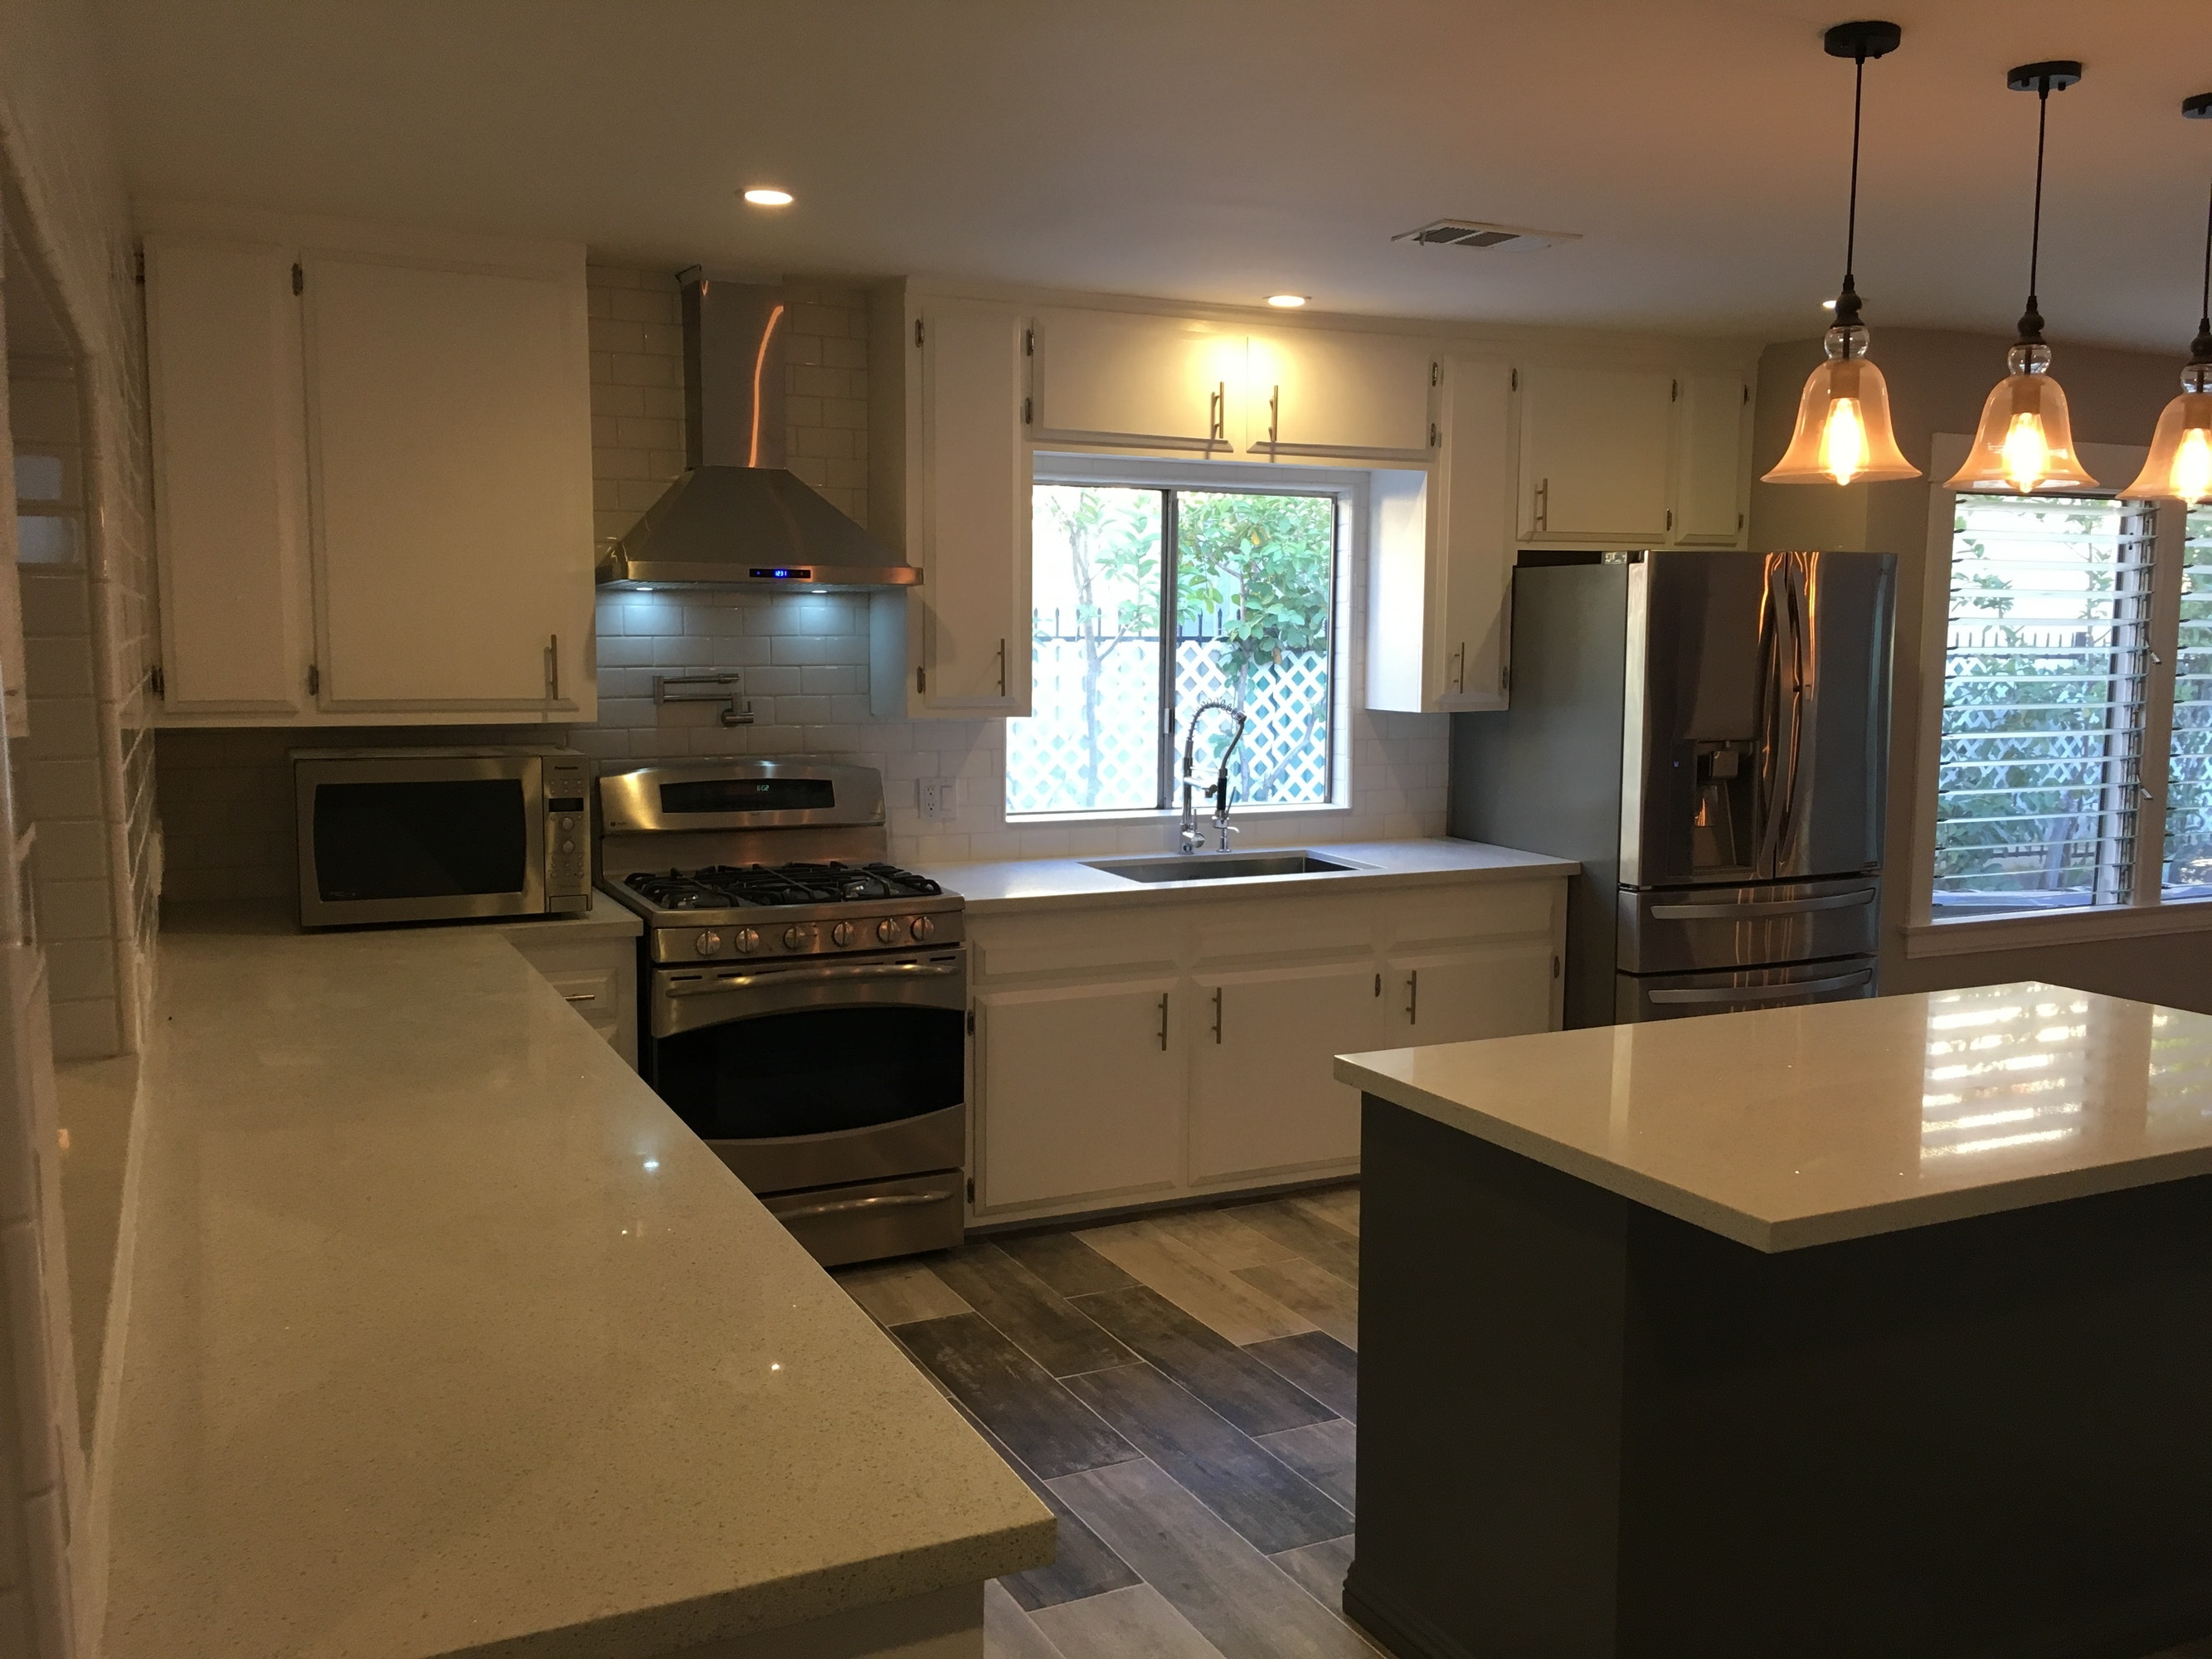 Washer And Dryer In Kitchen Big Beautiful House 4bd 2bath Massive Kitchen Ac Parking